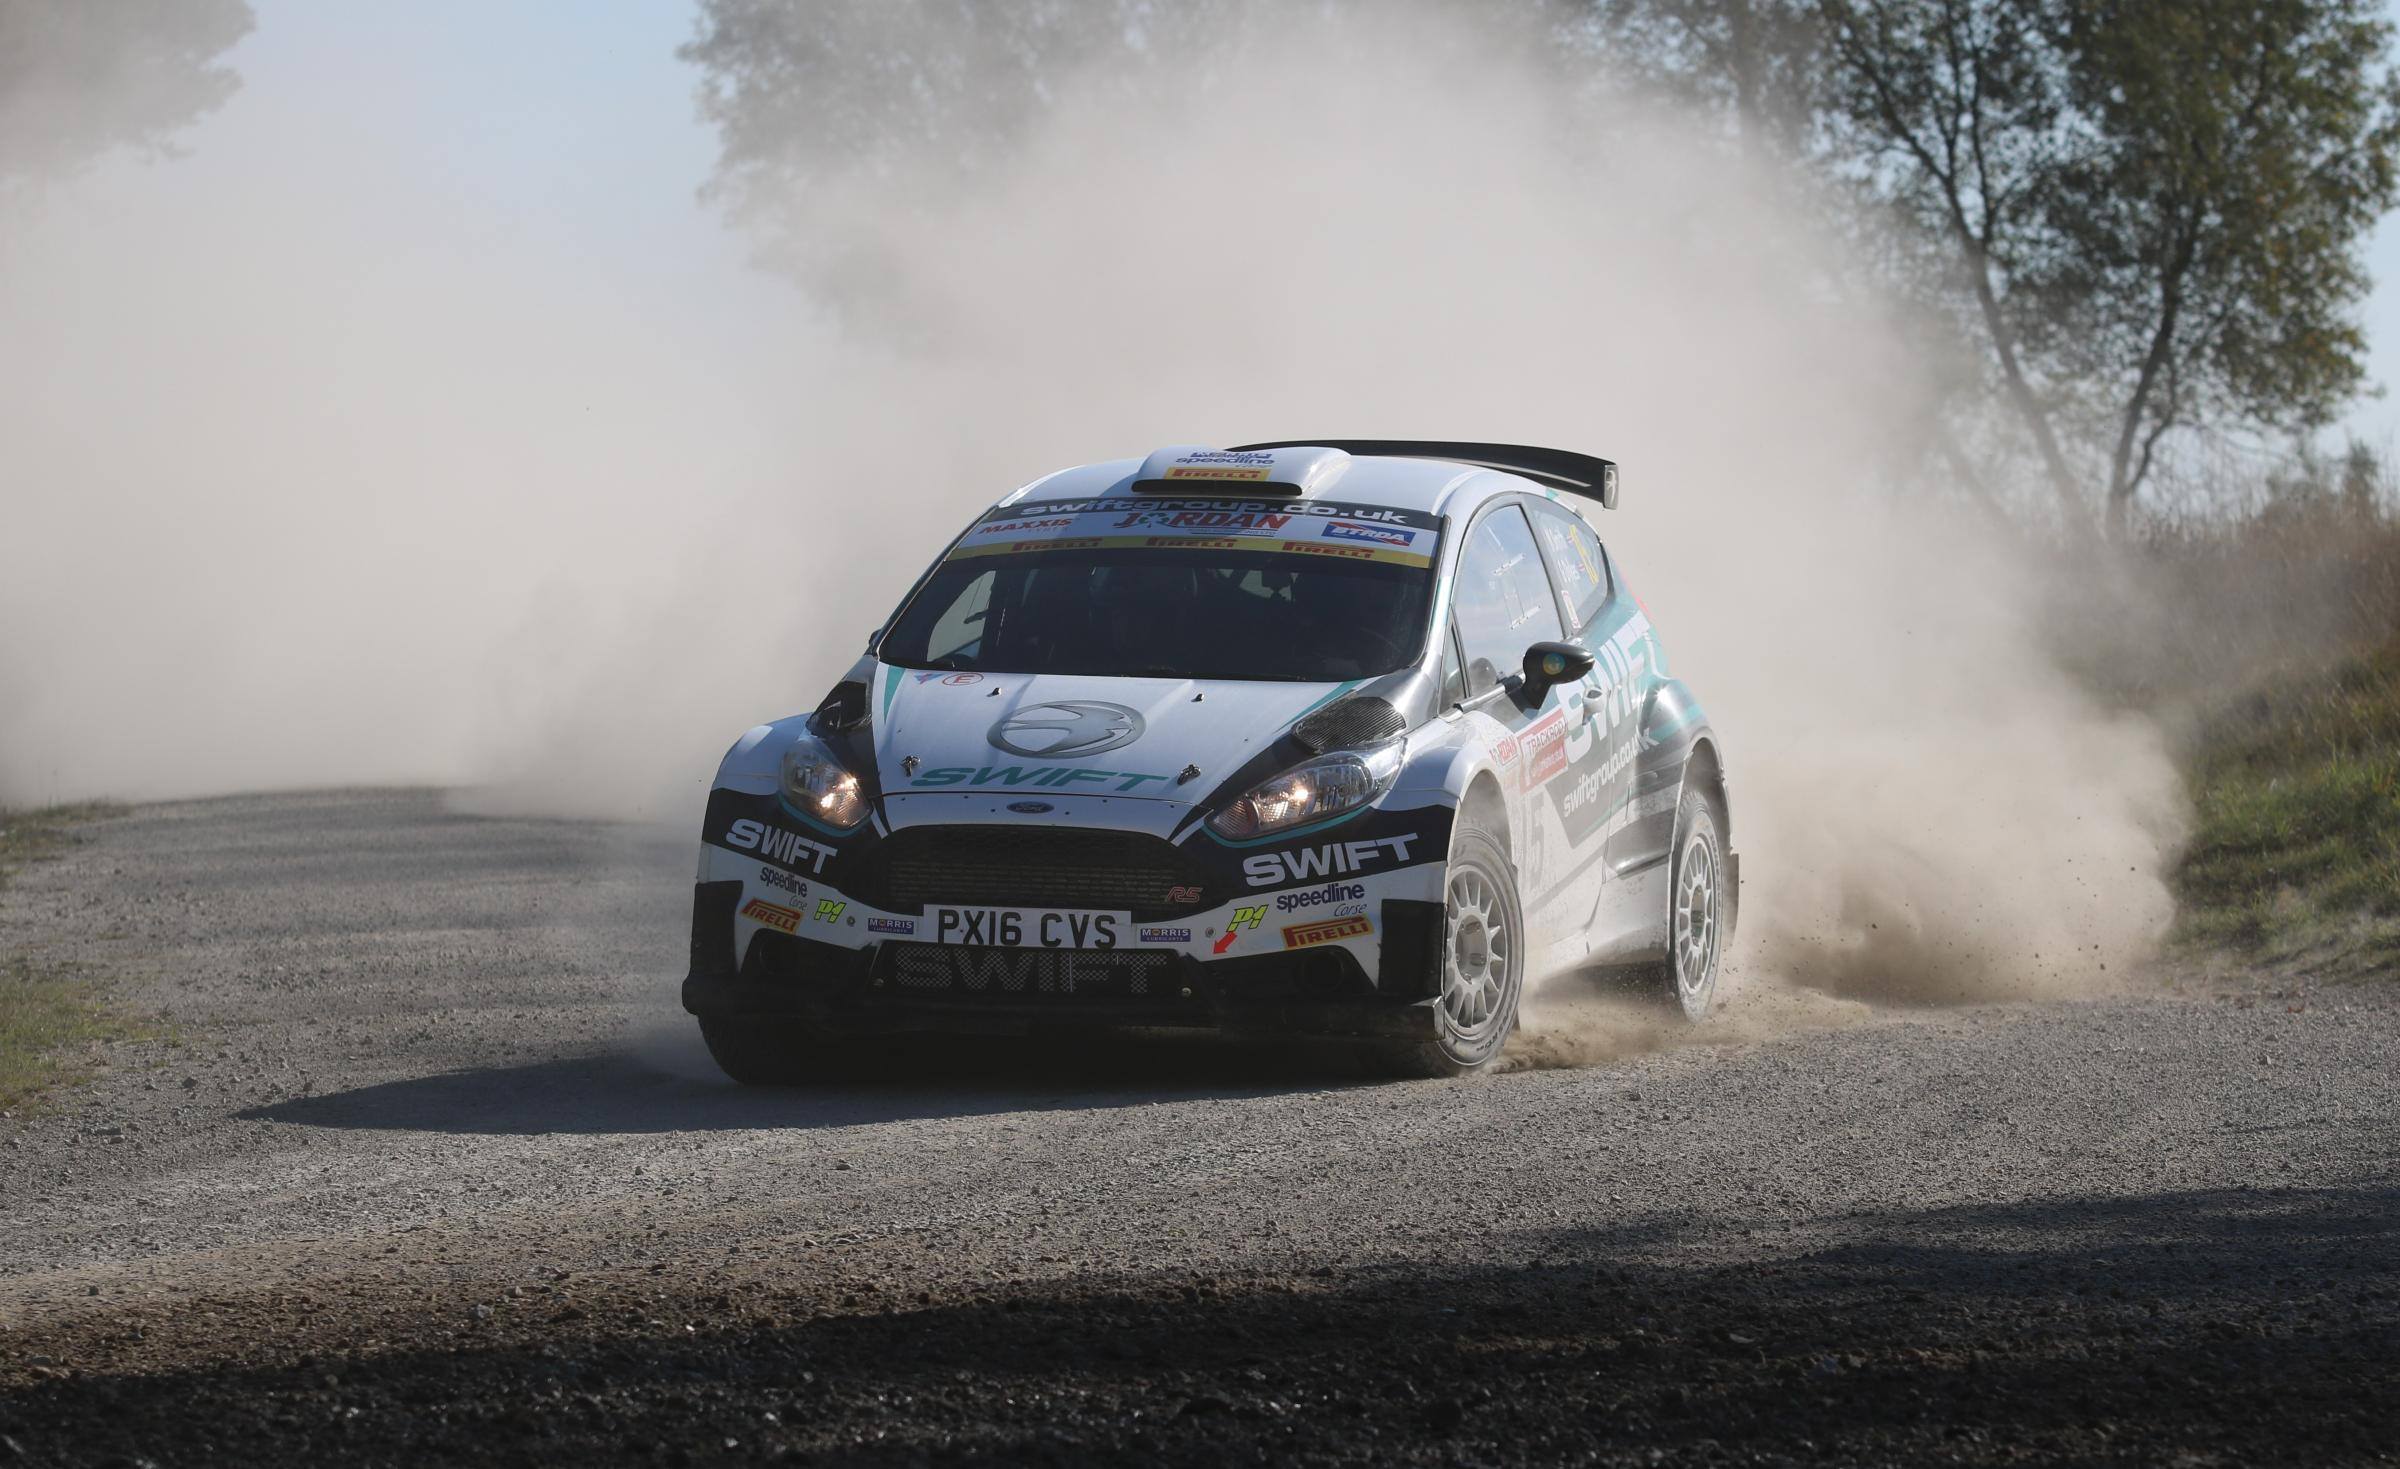 Press about racing, rally: a selection of sites